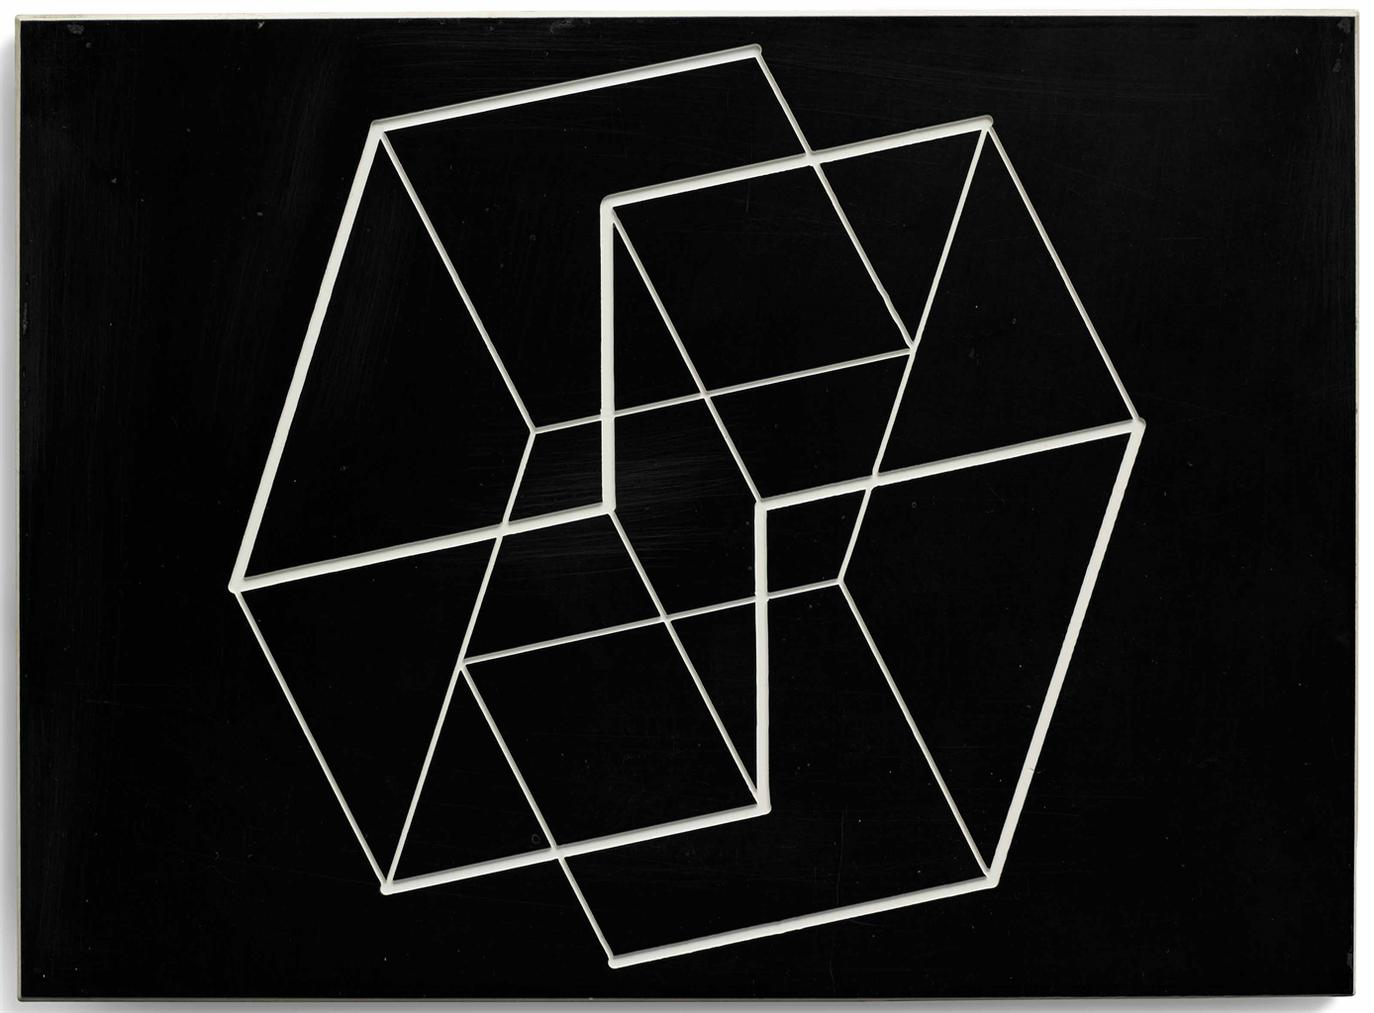 Josef Albers-Structural Constellation-1961